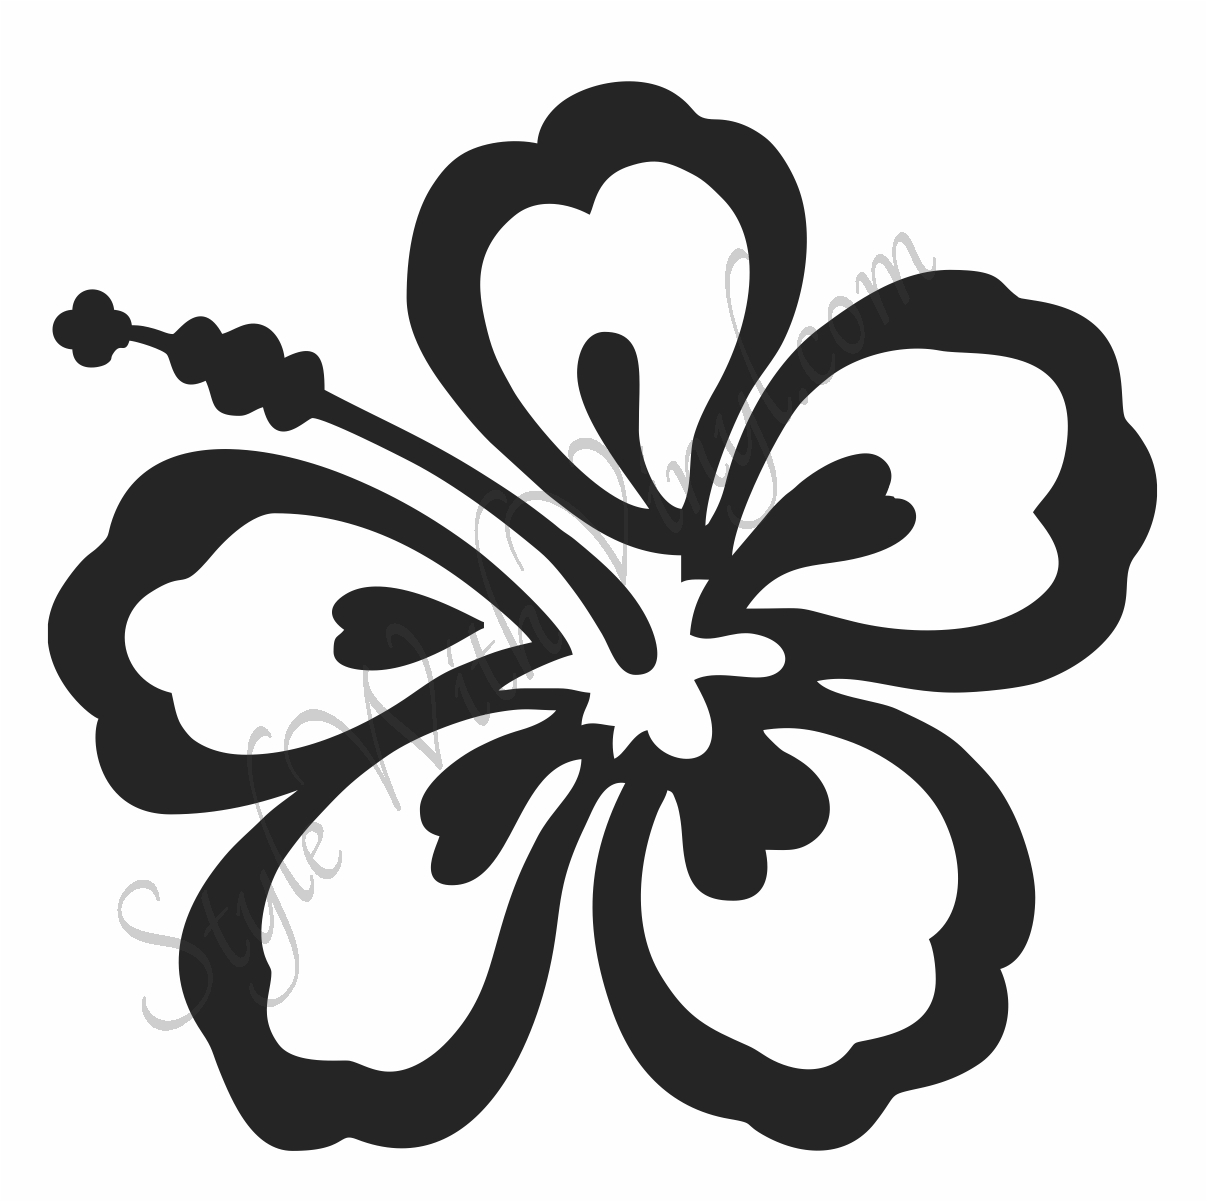 Hibiscus flower outline free download best hibiscus flower outline 1207x1202 drawn hibiscus simple izmirmasajfo